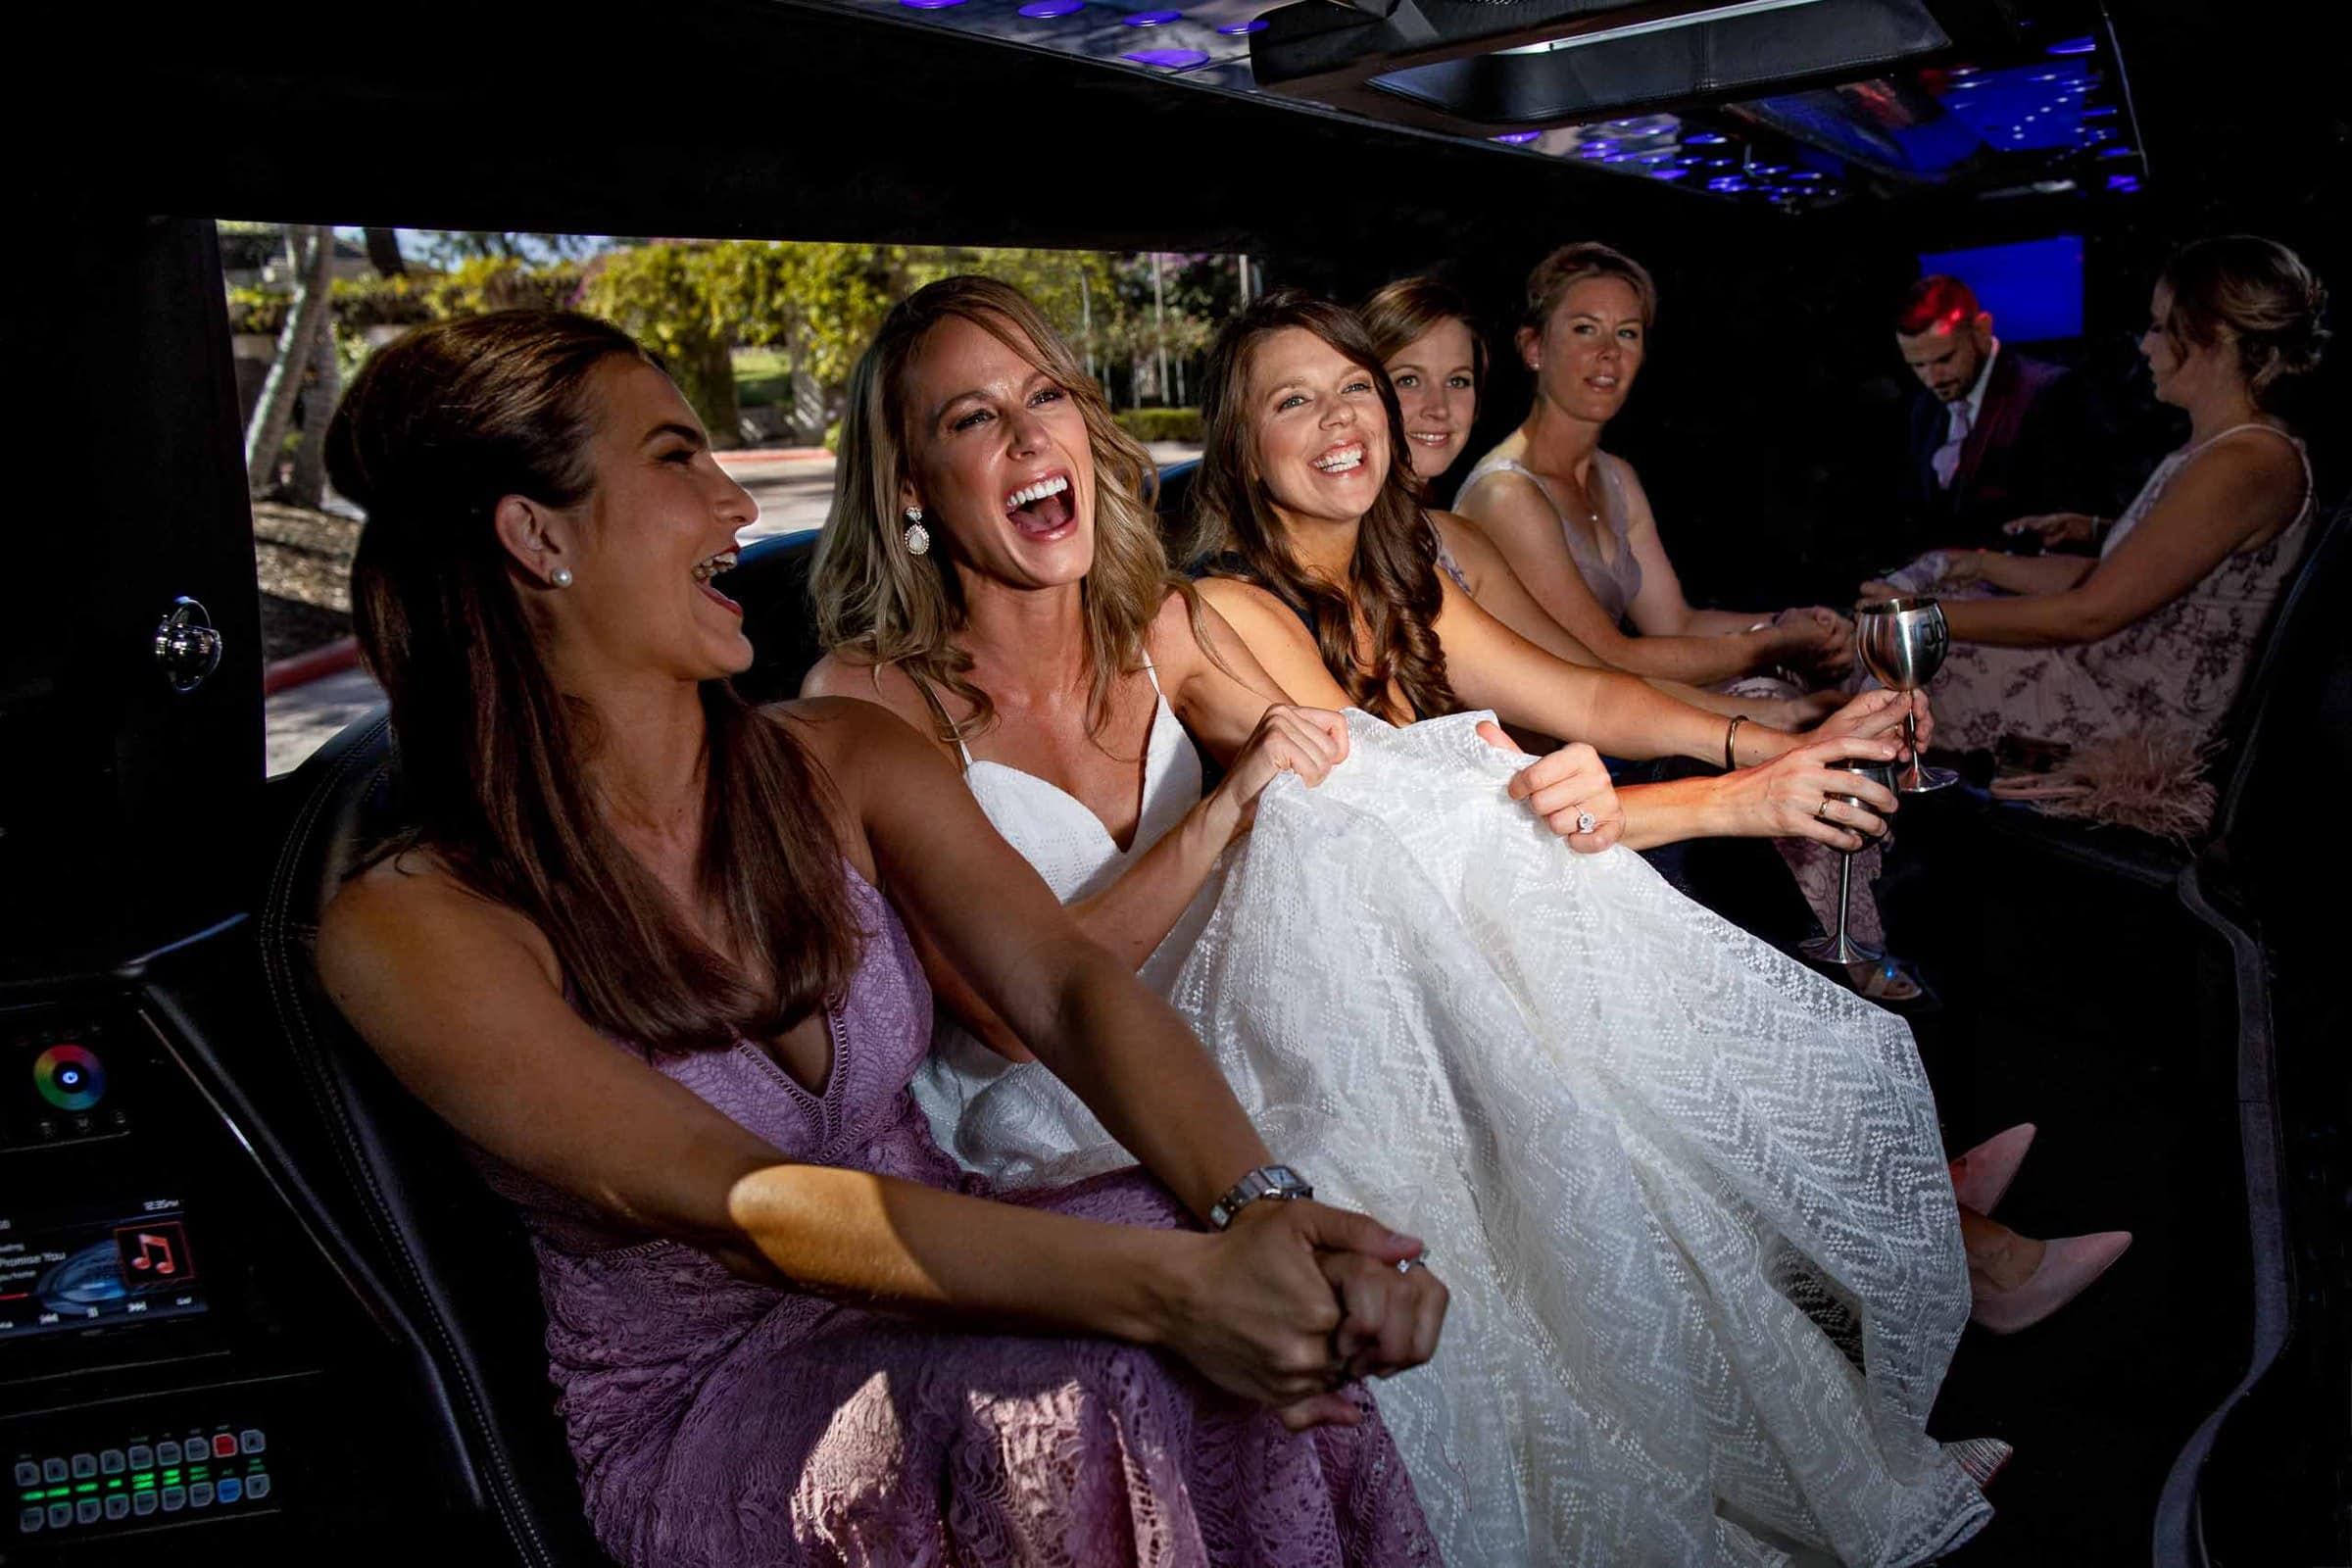 Bride and Bride riding with best friends in a limo to their Calamigos Ranch Wedding in Malibu, California